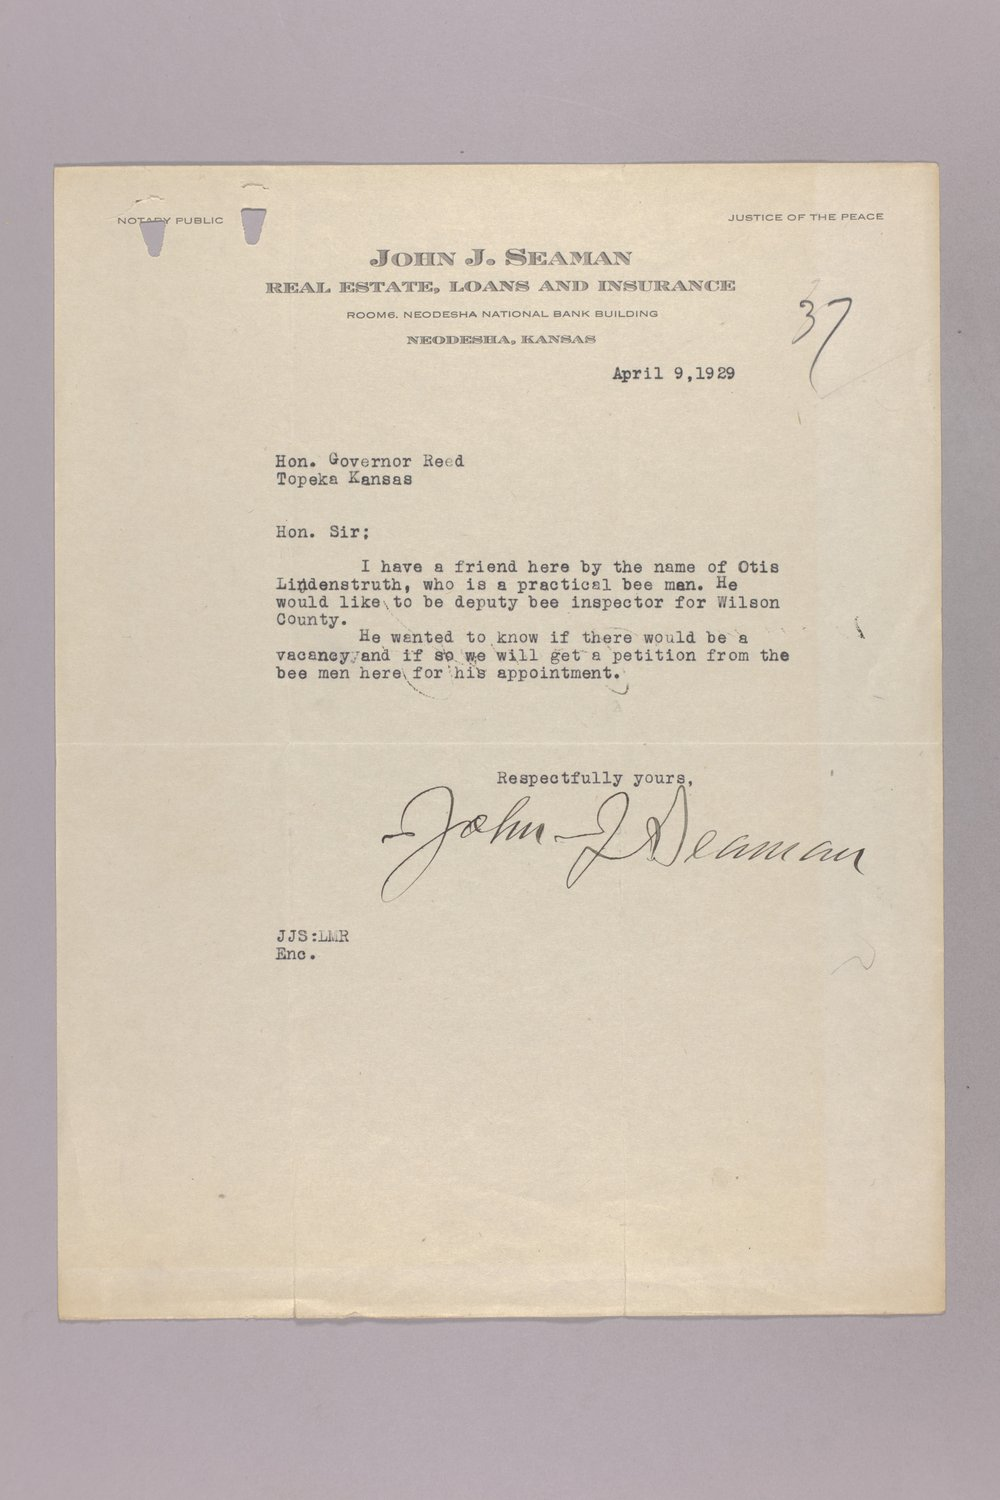 Governor Clyde M. Reed correspondence, Entomological Commission - 3